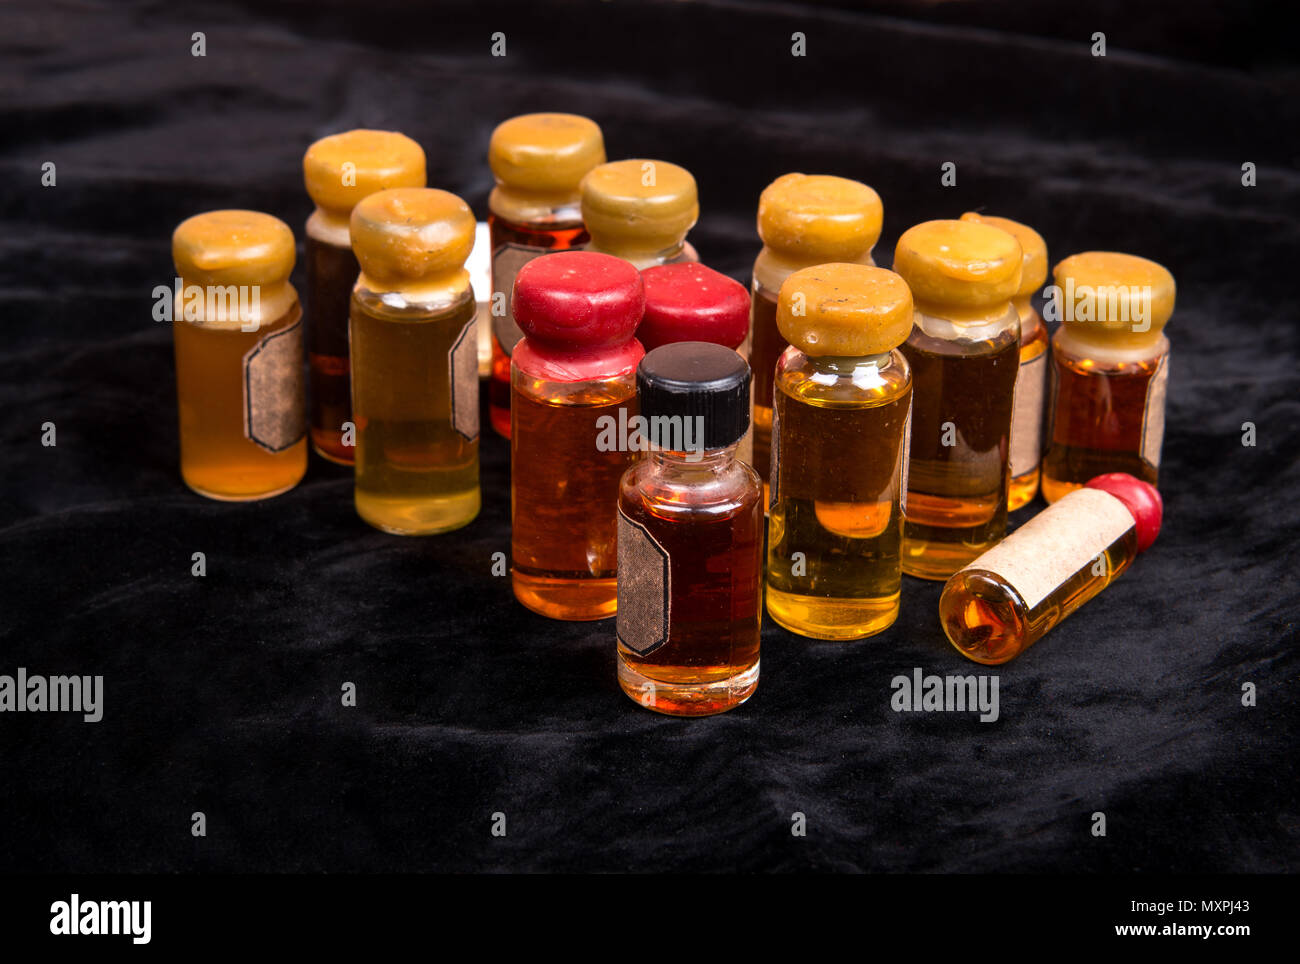 Numerous bottles of magical potion on dark background - Stock Image